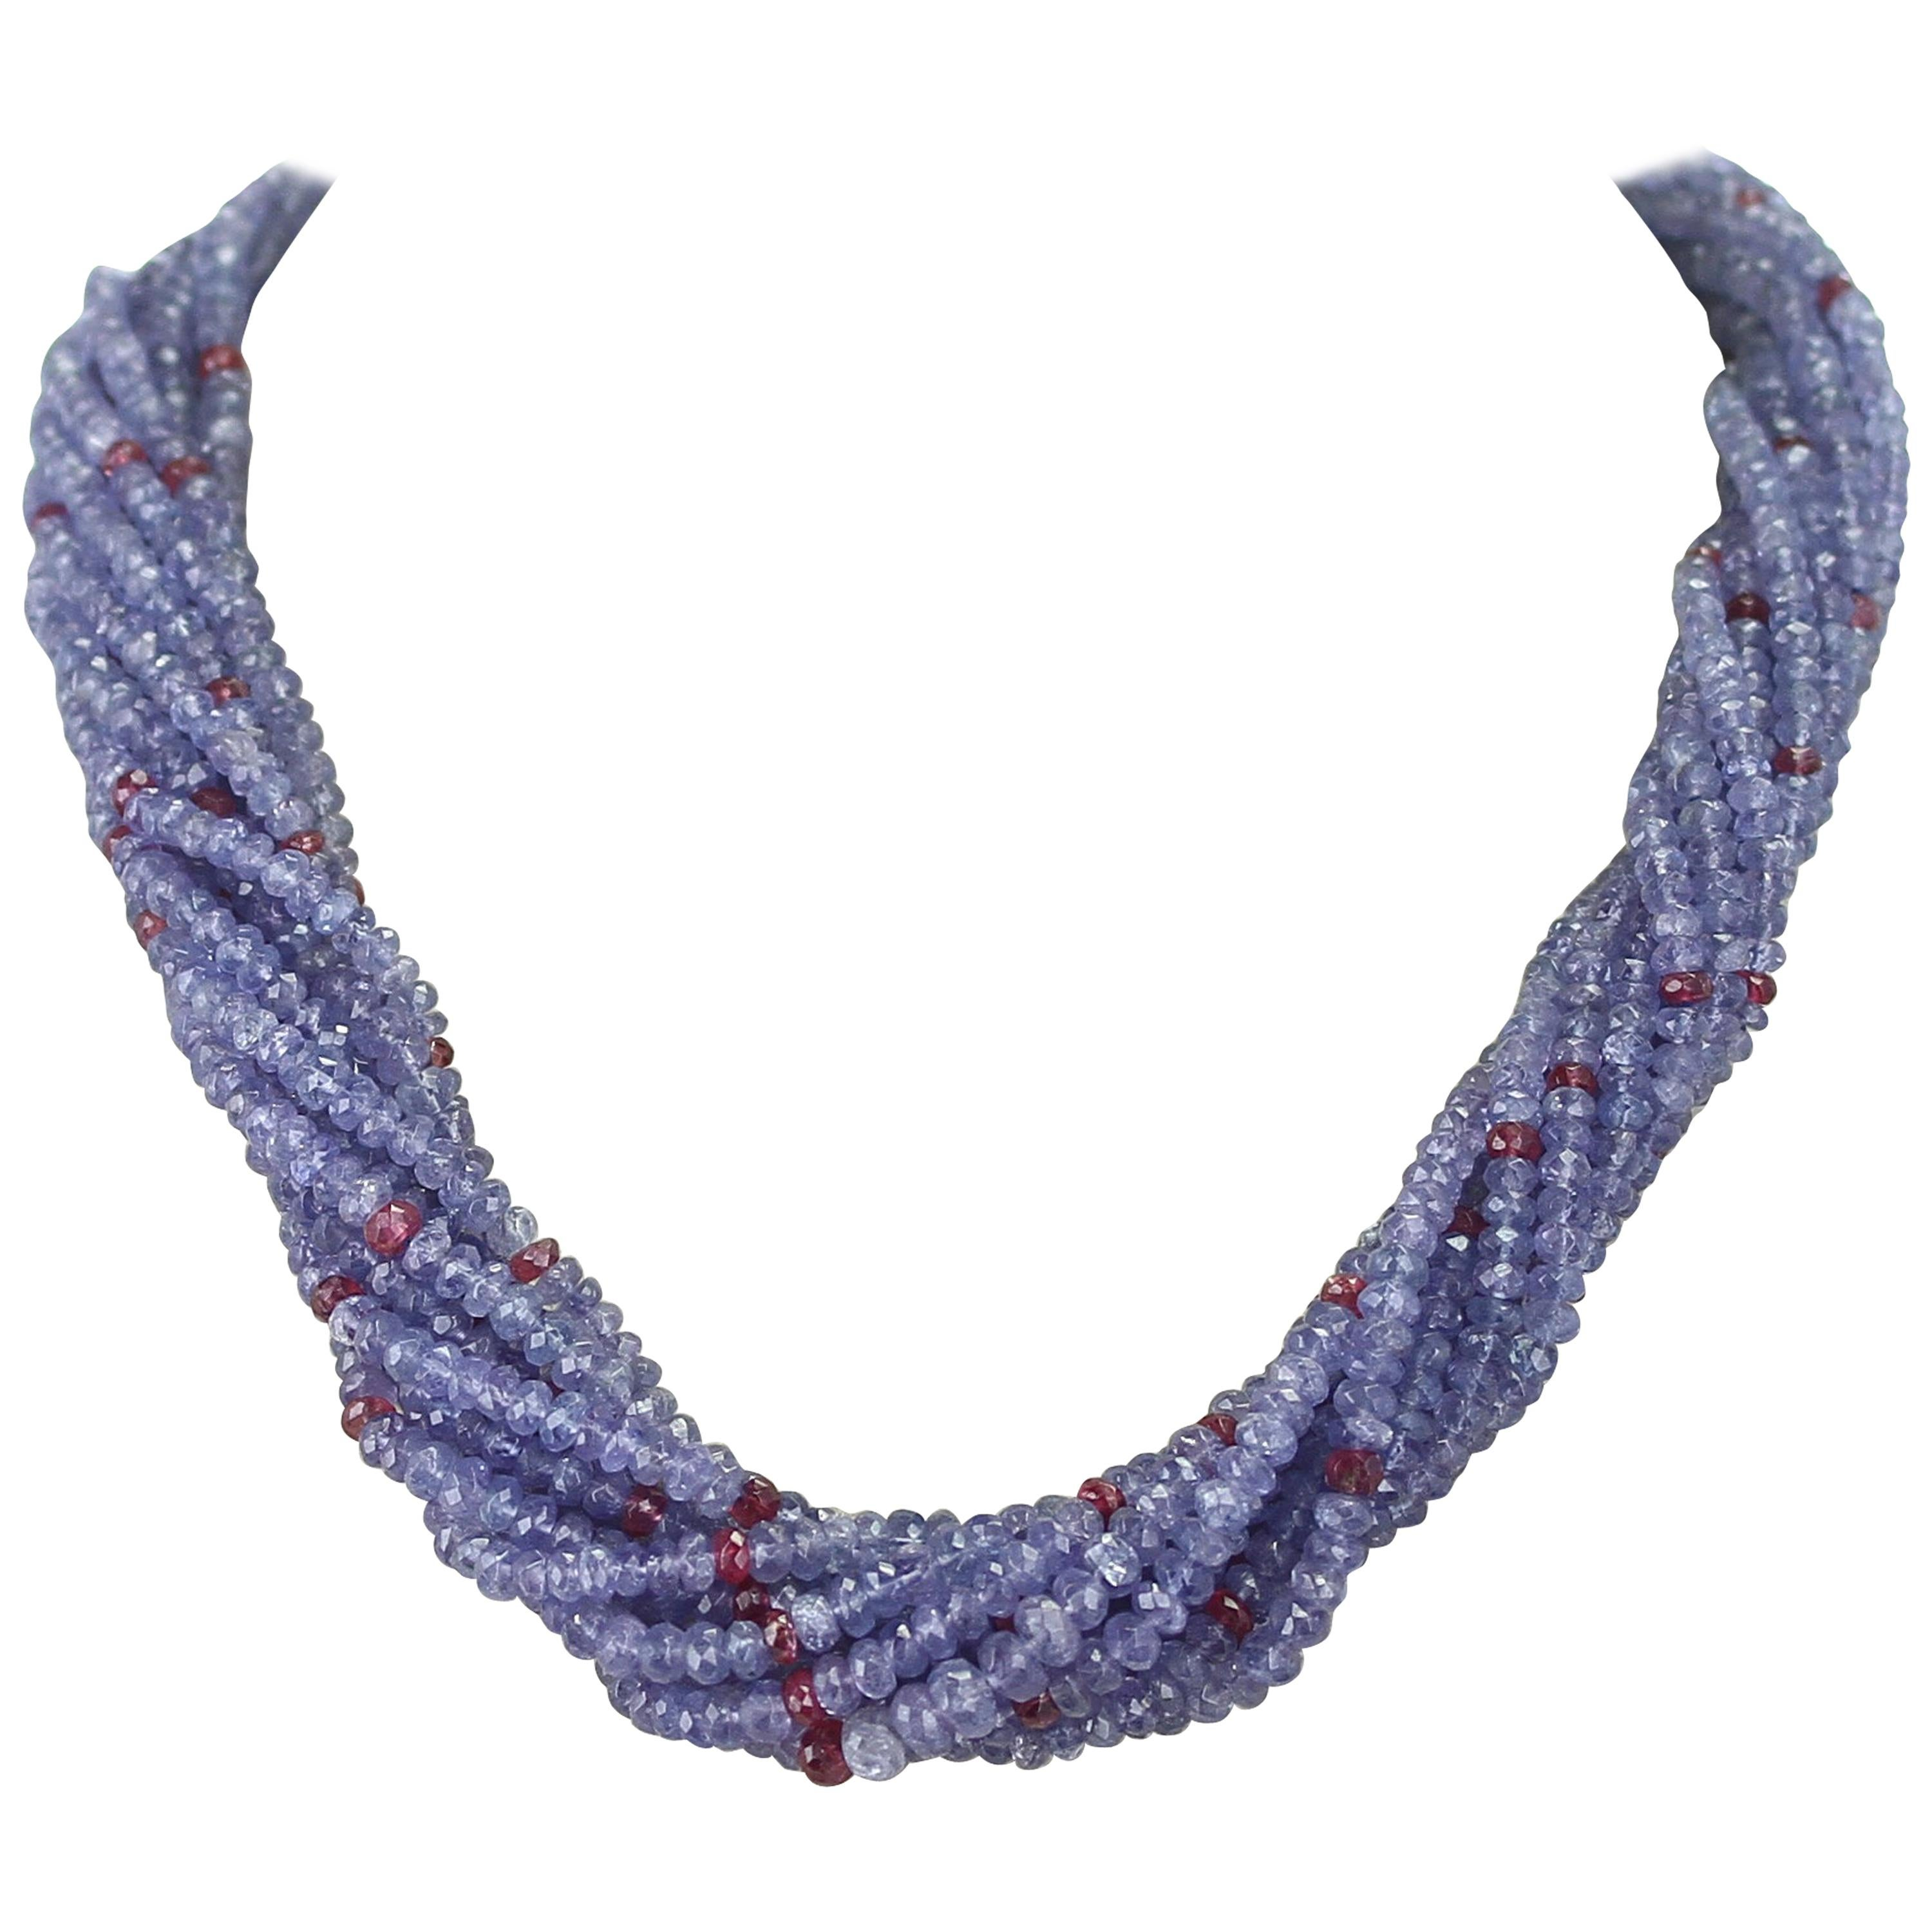 Genuine and Natural Tanzanite and Spinel Faceted Bead Choker Necklace, 18K White